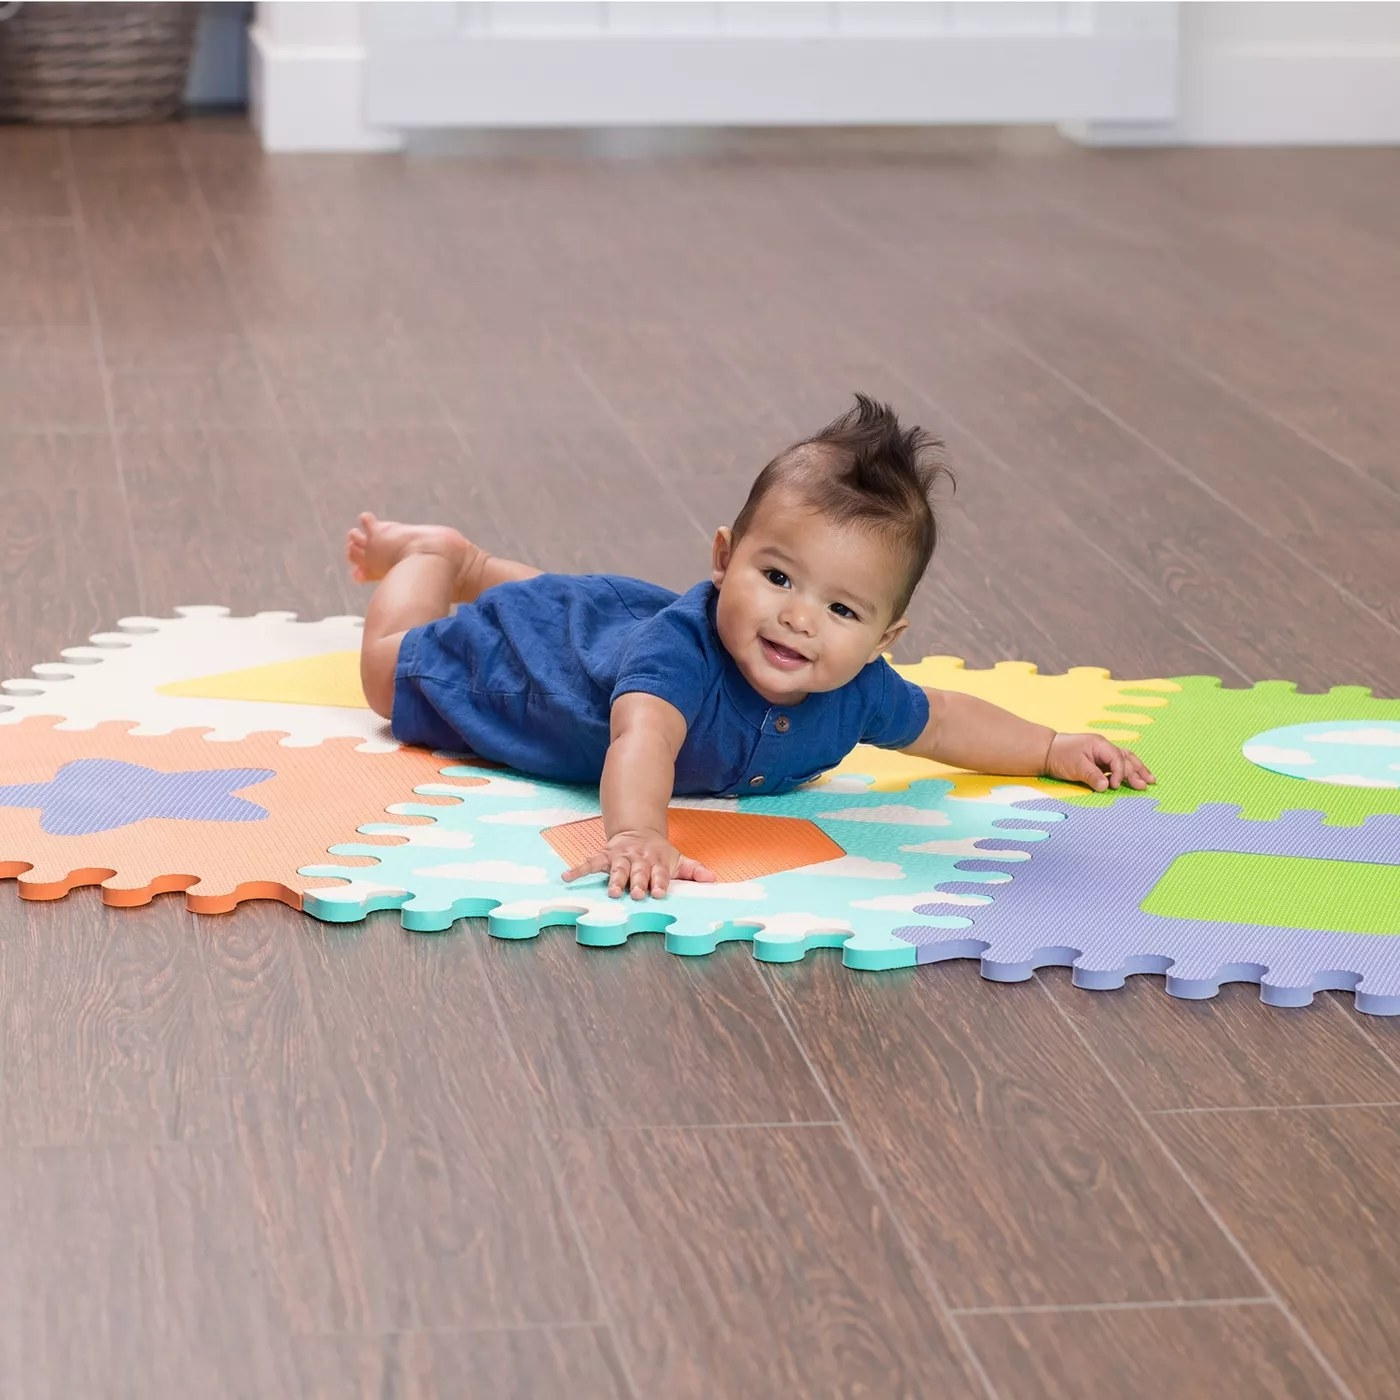 A baby on a foam puzzle mat